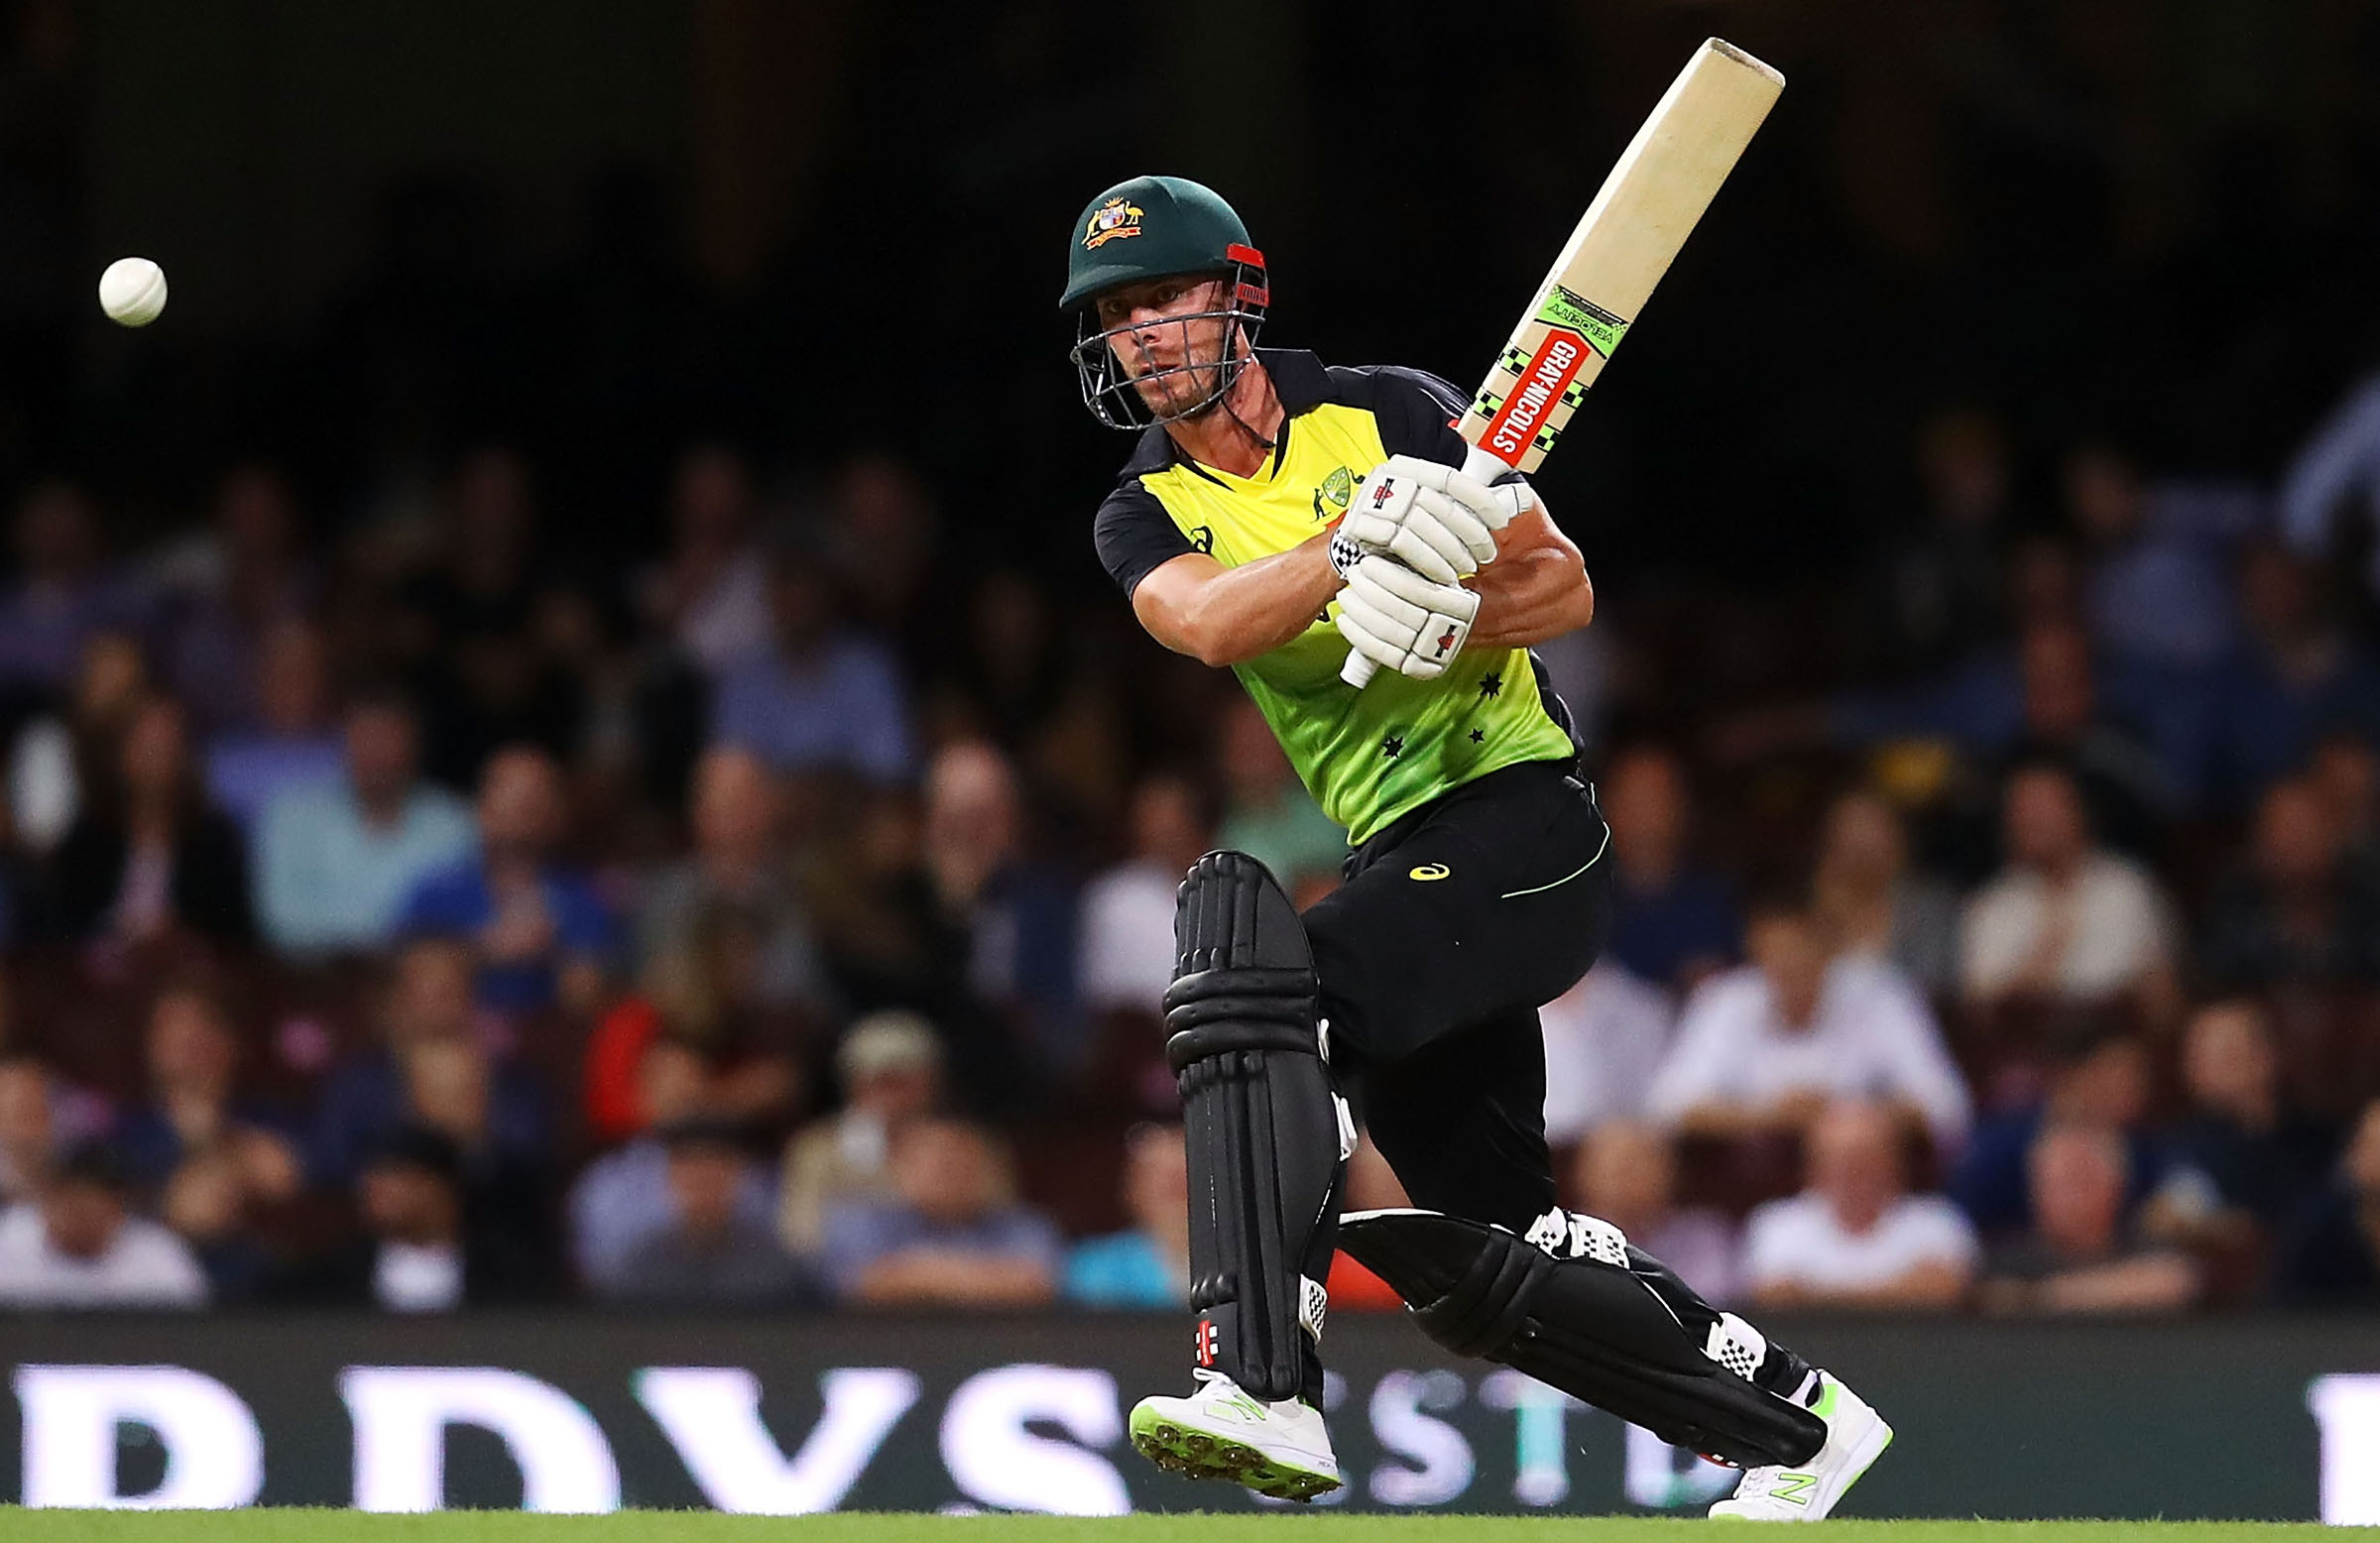 Lynn is looking for a substantial contribution in the final. (Cricket Australia)